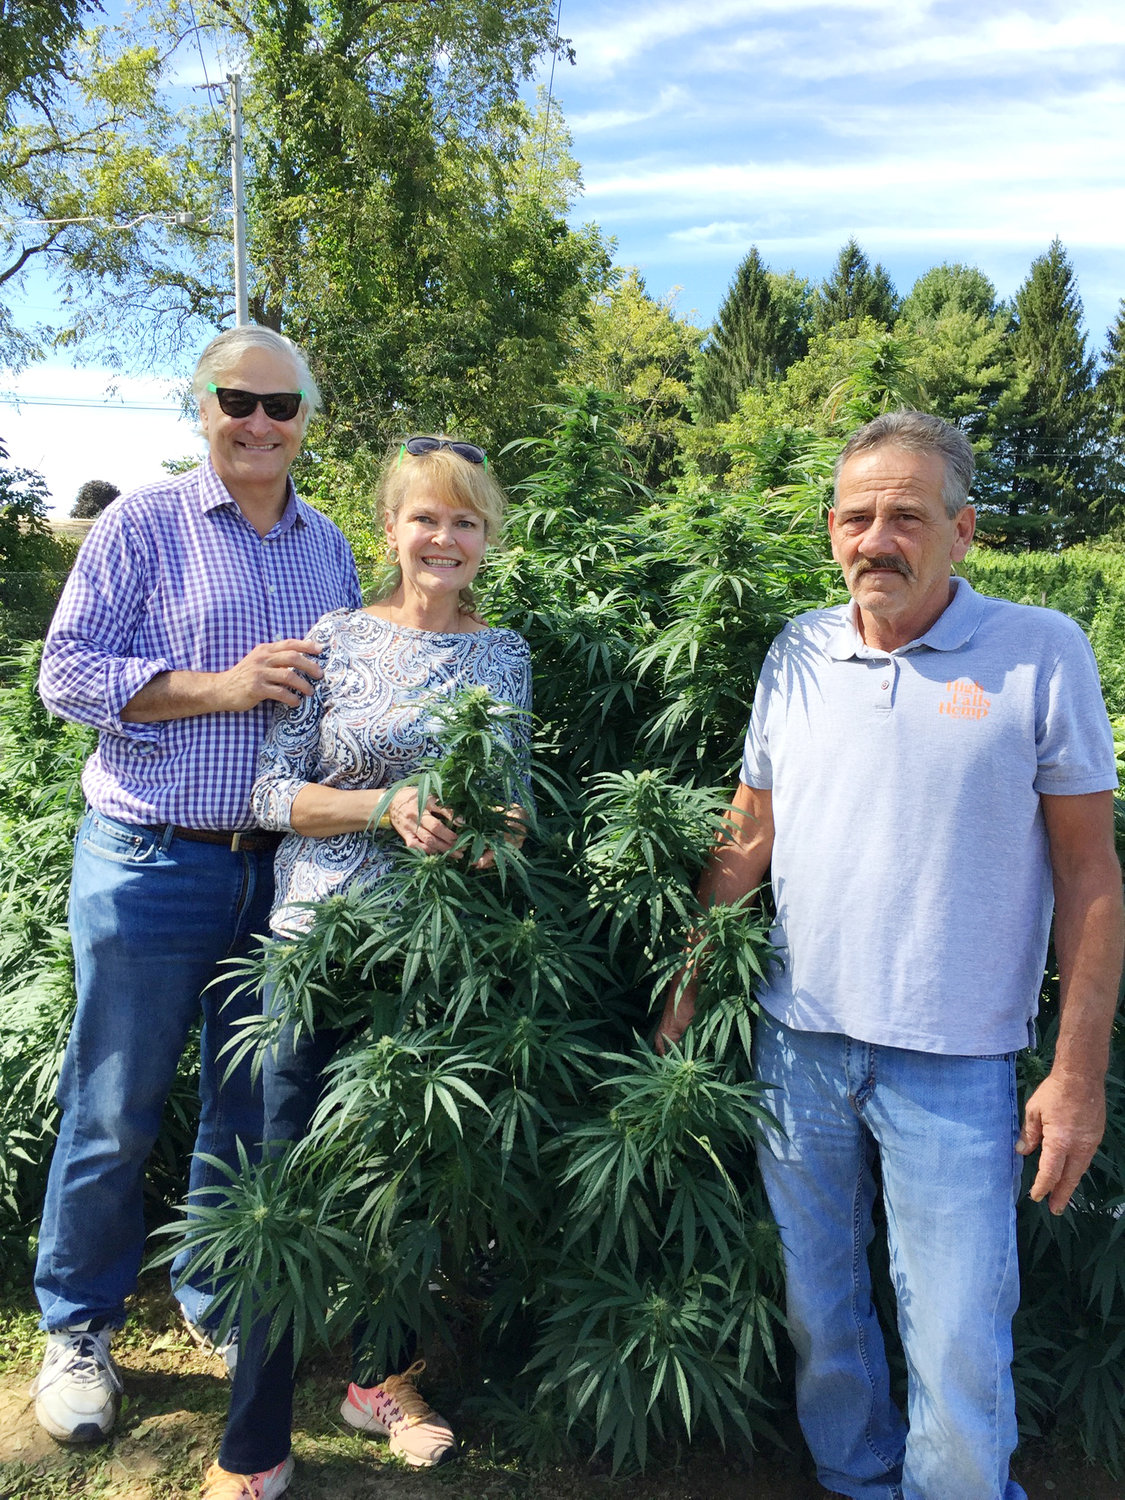 Rick Weissman, Tricia Horst and Kenny Oakley pose with a happy hemp plant.